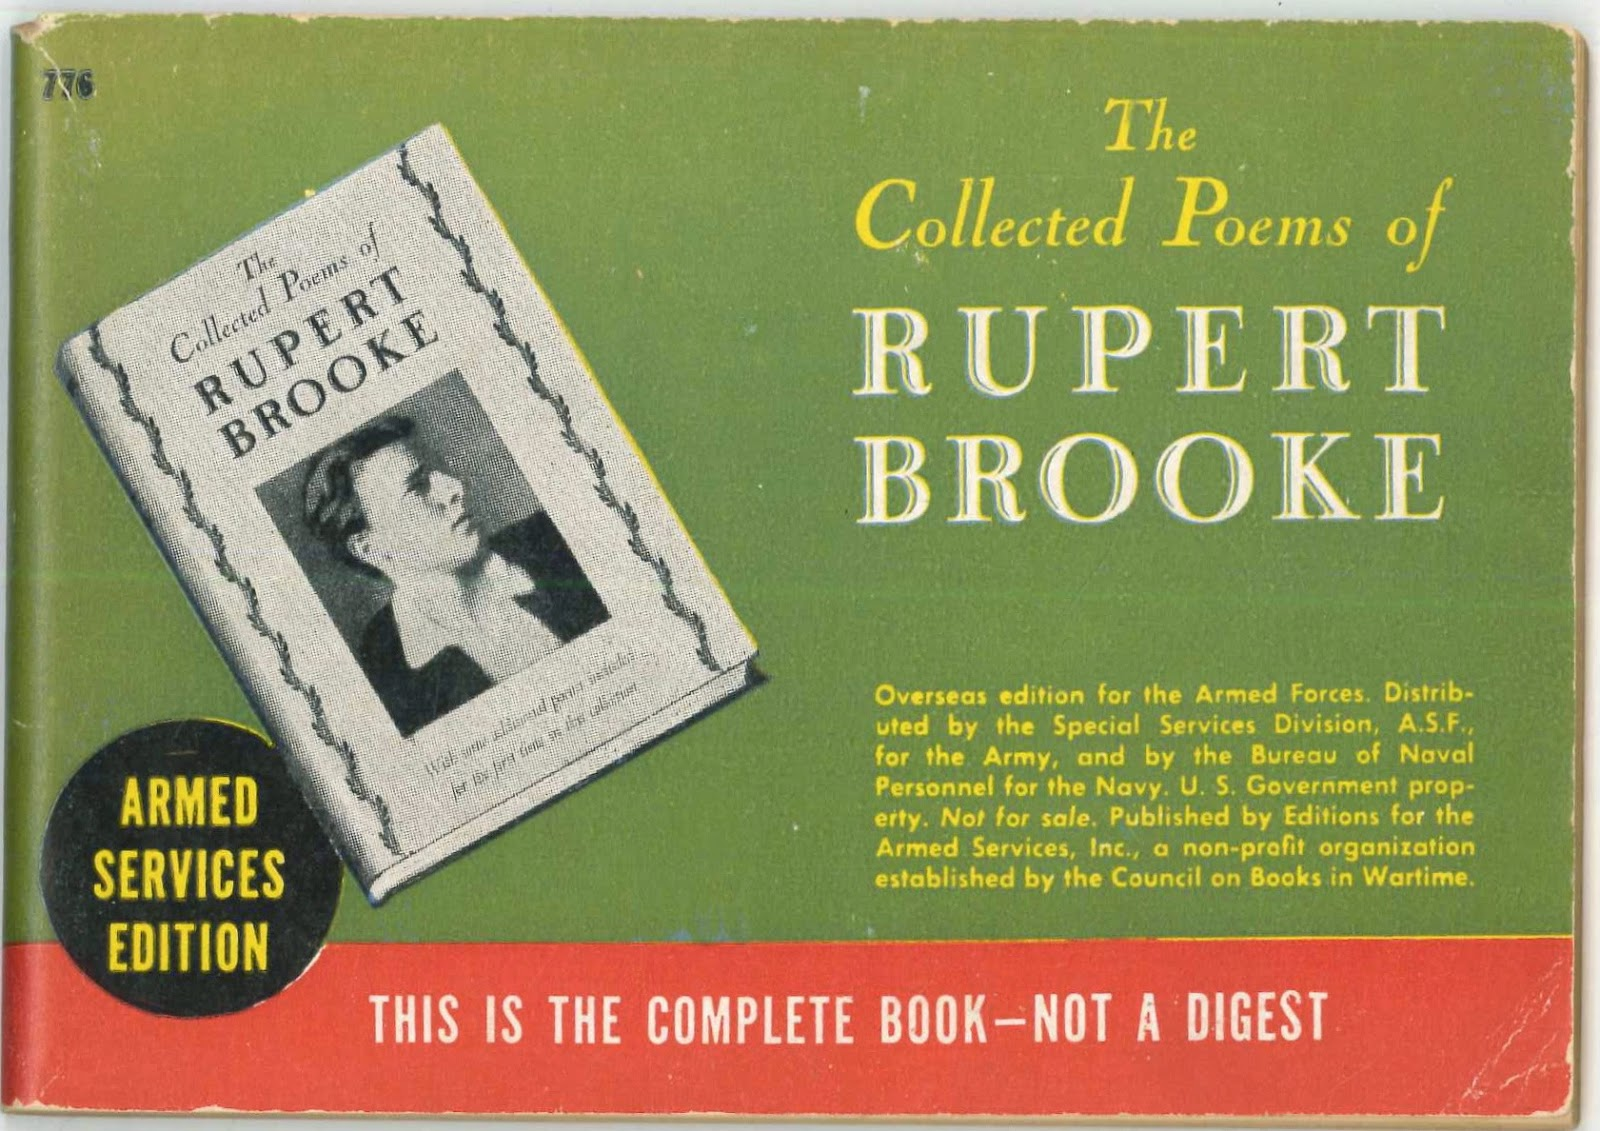 The cover for an armed services edition of Brooke's poems.